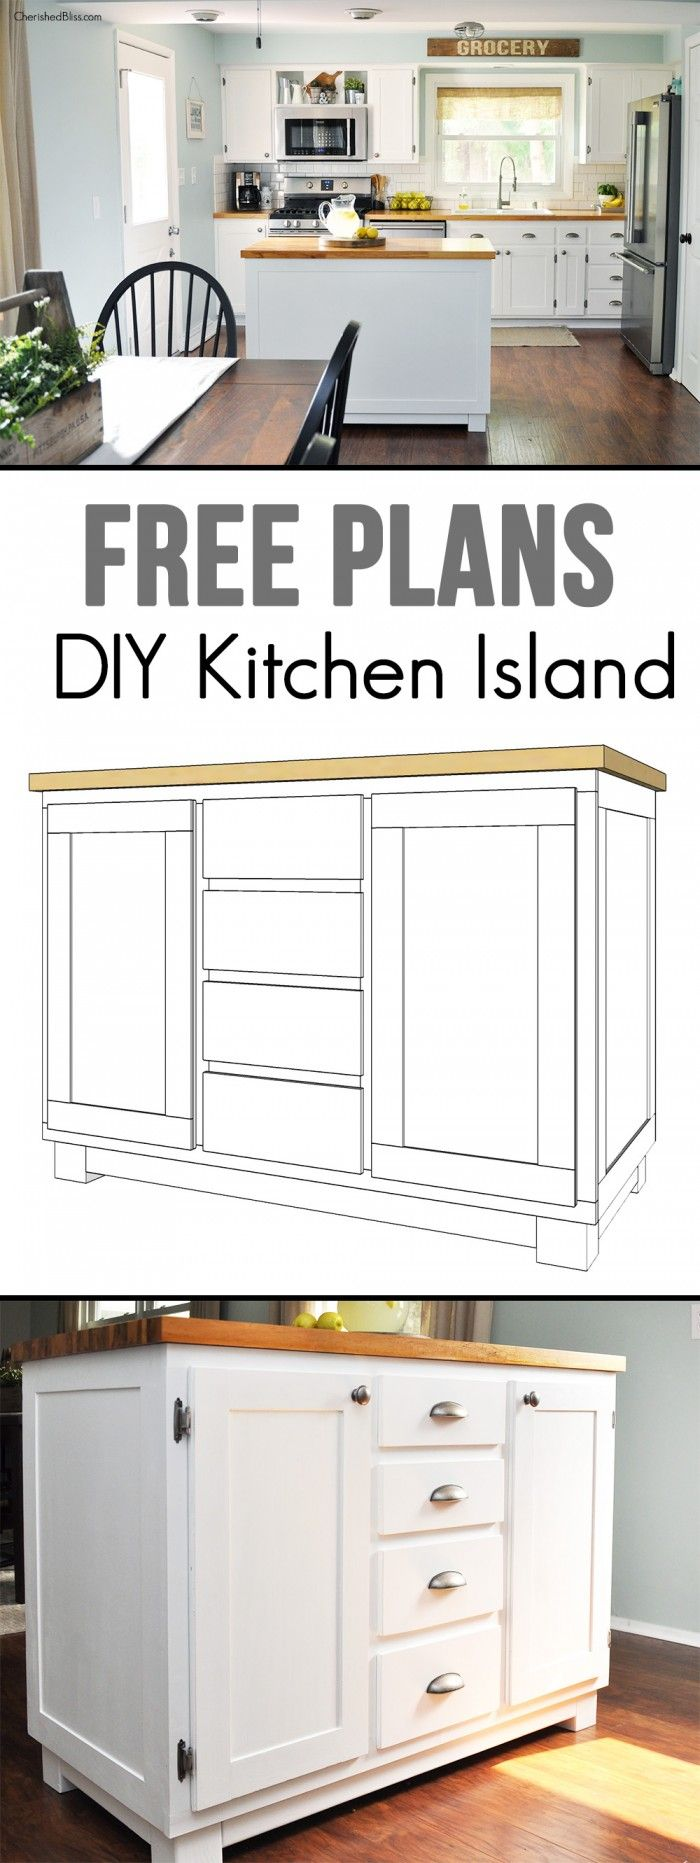 Diy kitchen island design plans - Get The Kitchen You Ve Always Dreamed Of By Building This Diy Kitchen Island